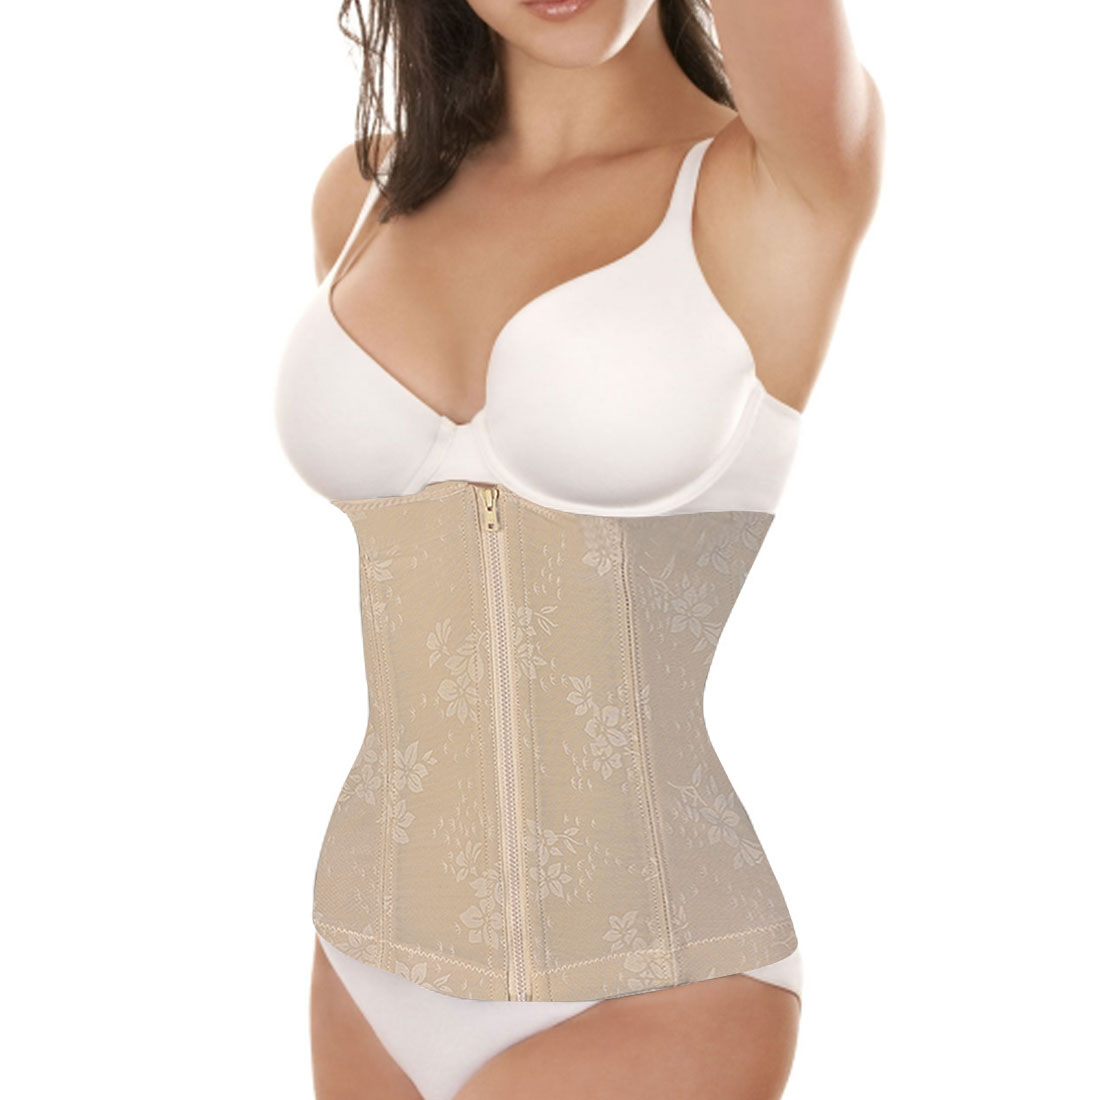 Adjustable Stretchy Tummy Slimmer Girdle Corset Waist Cincher Beige L for Woman